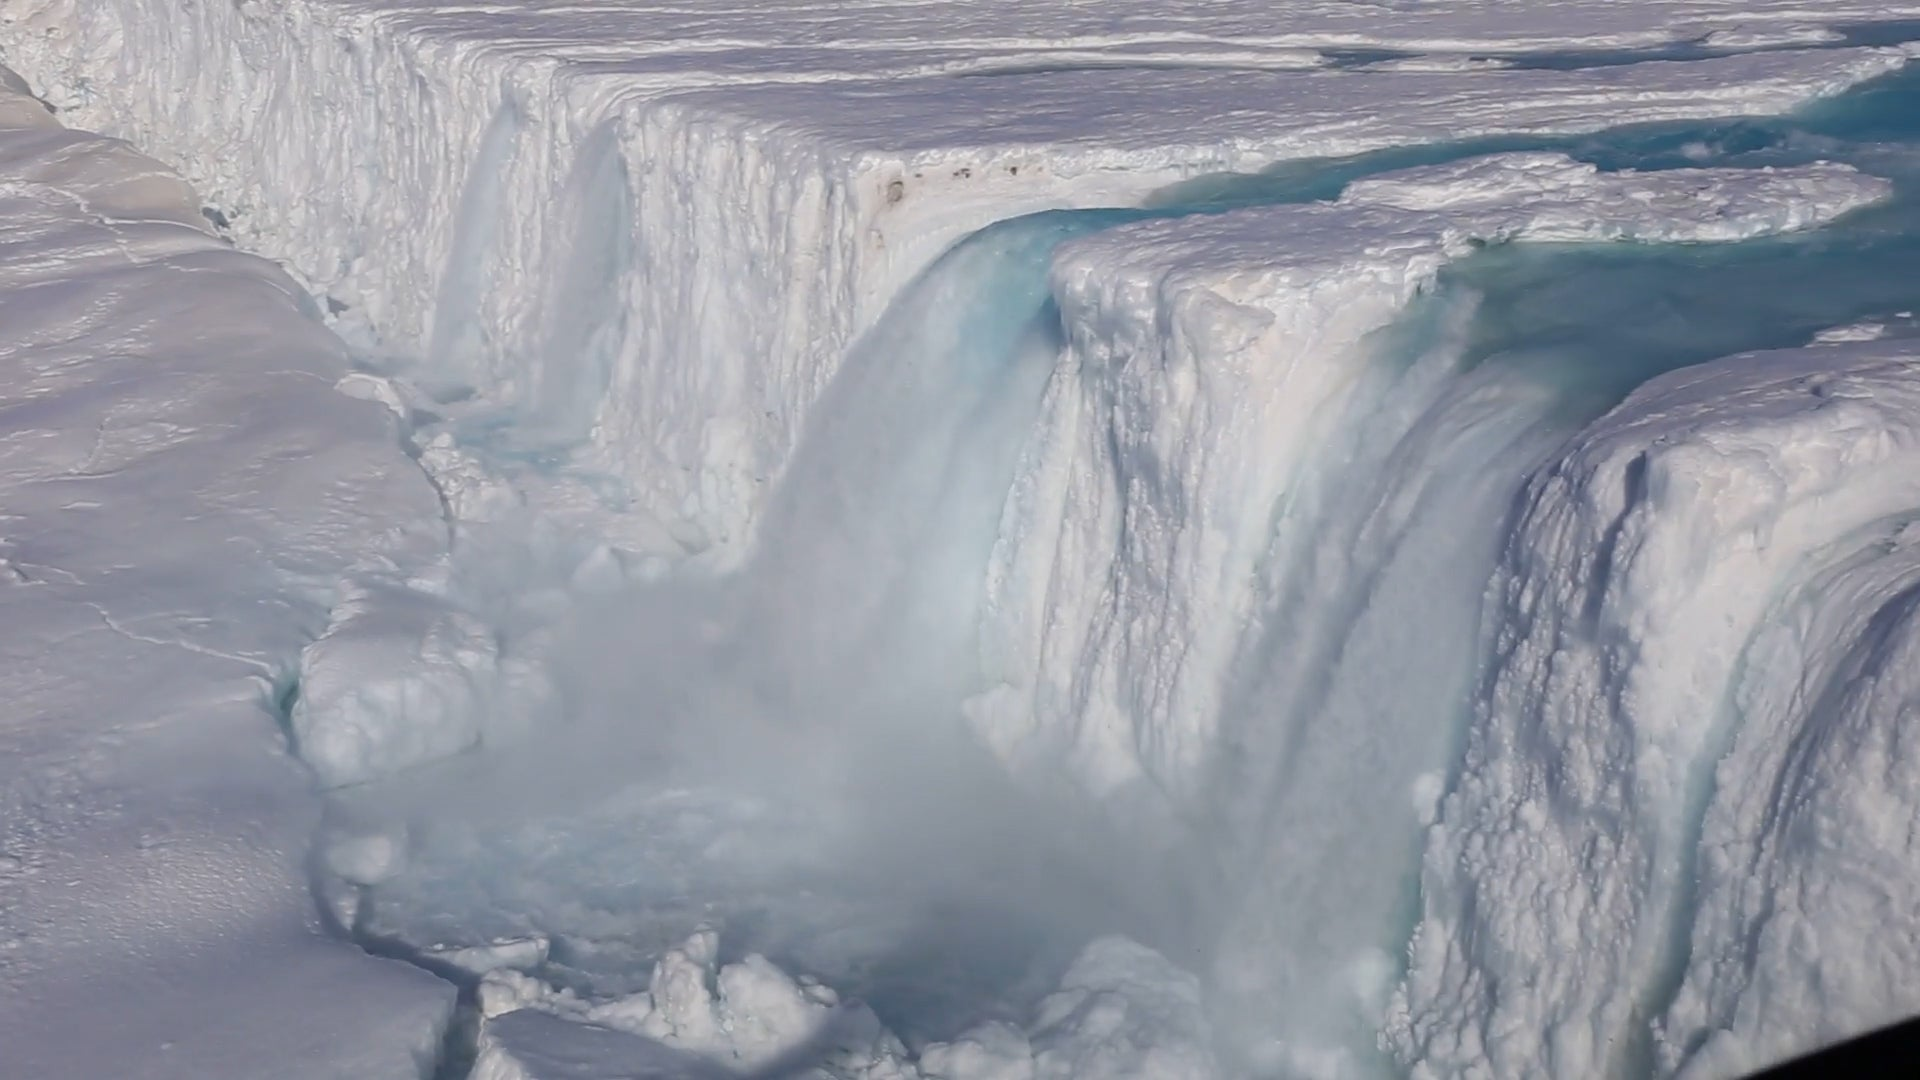 Water Beneath Ice Shelves is Causing Fractures